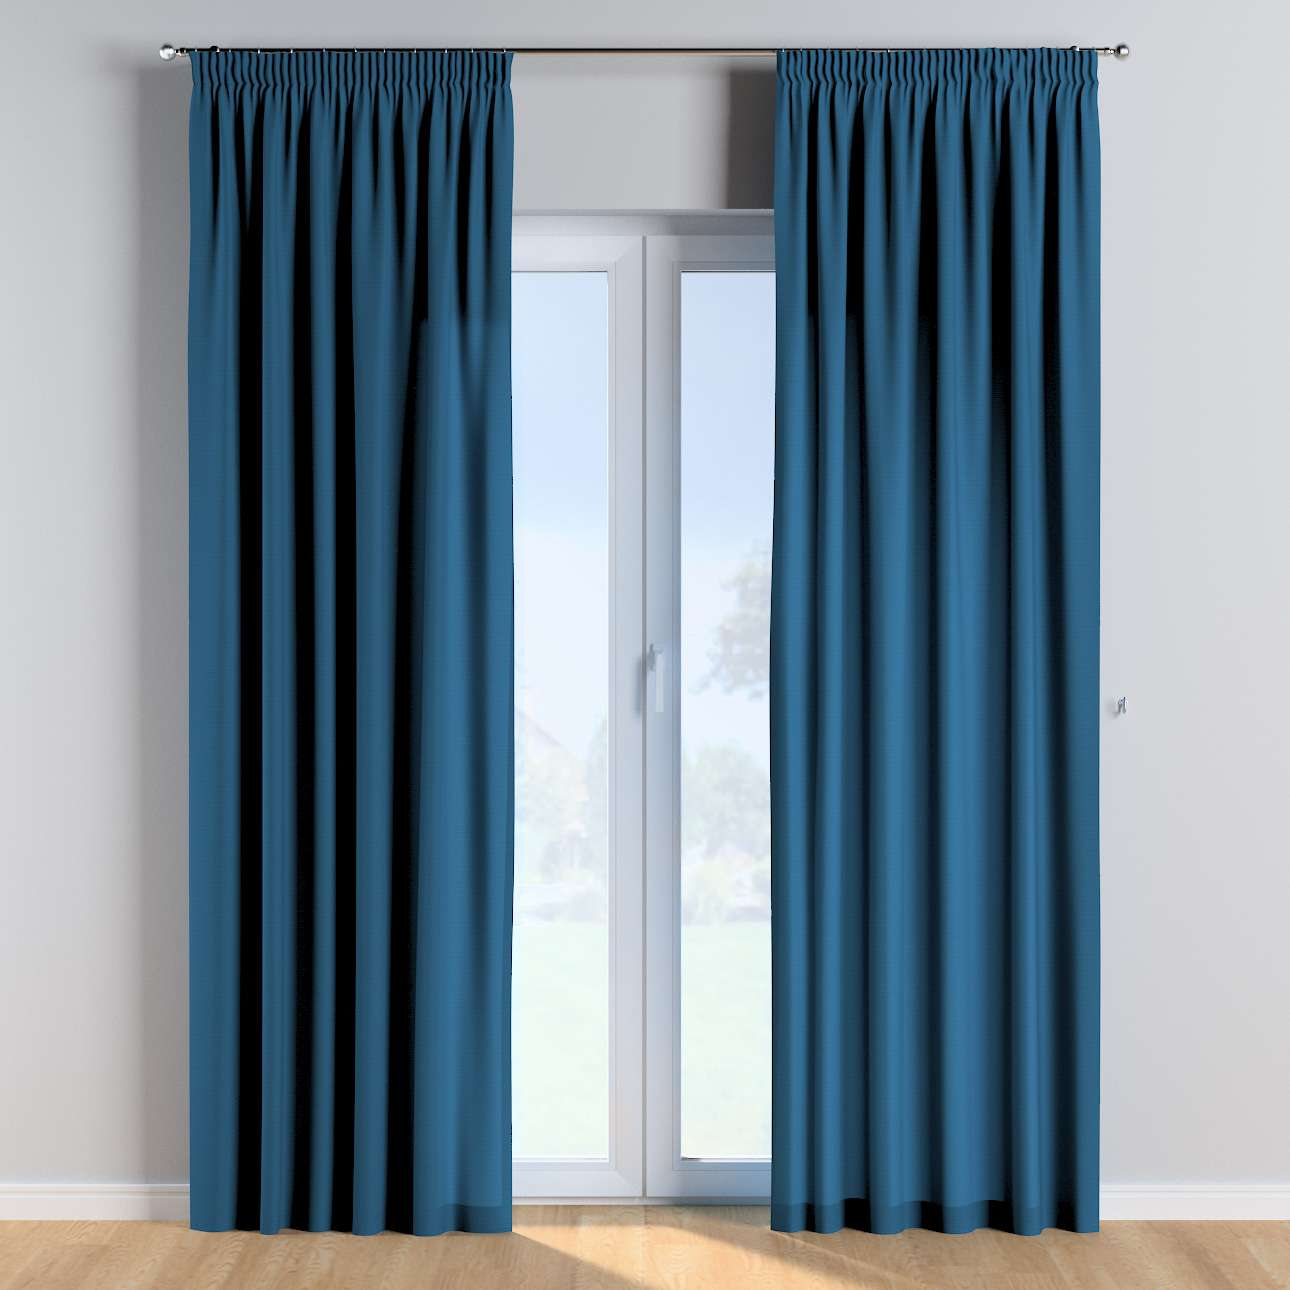 Pencil pleat curtains in collection Cotton Story, fabric: 702-30